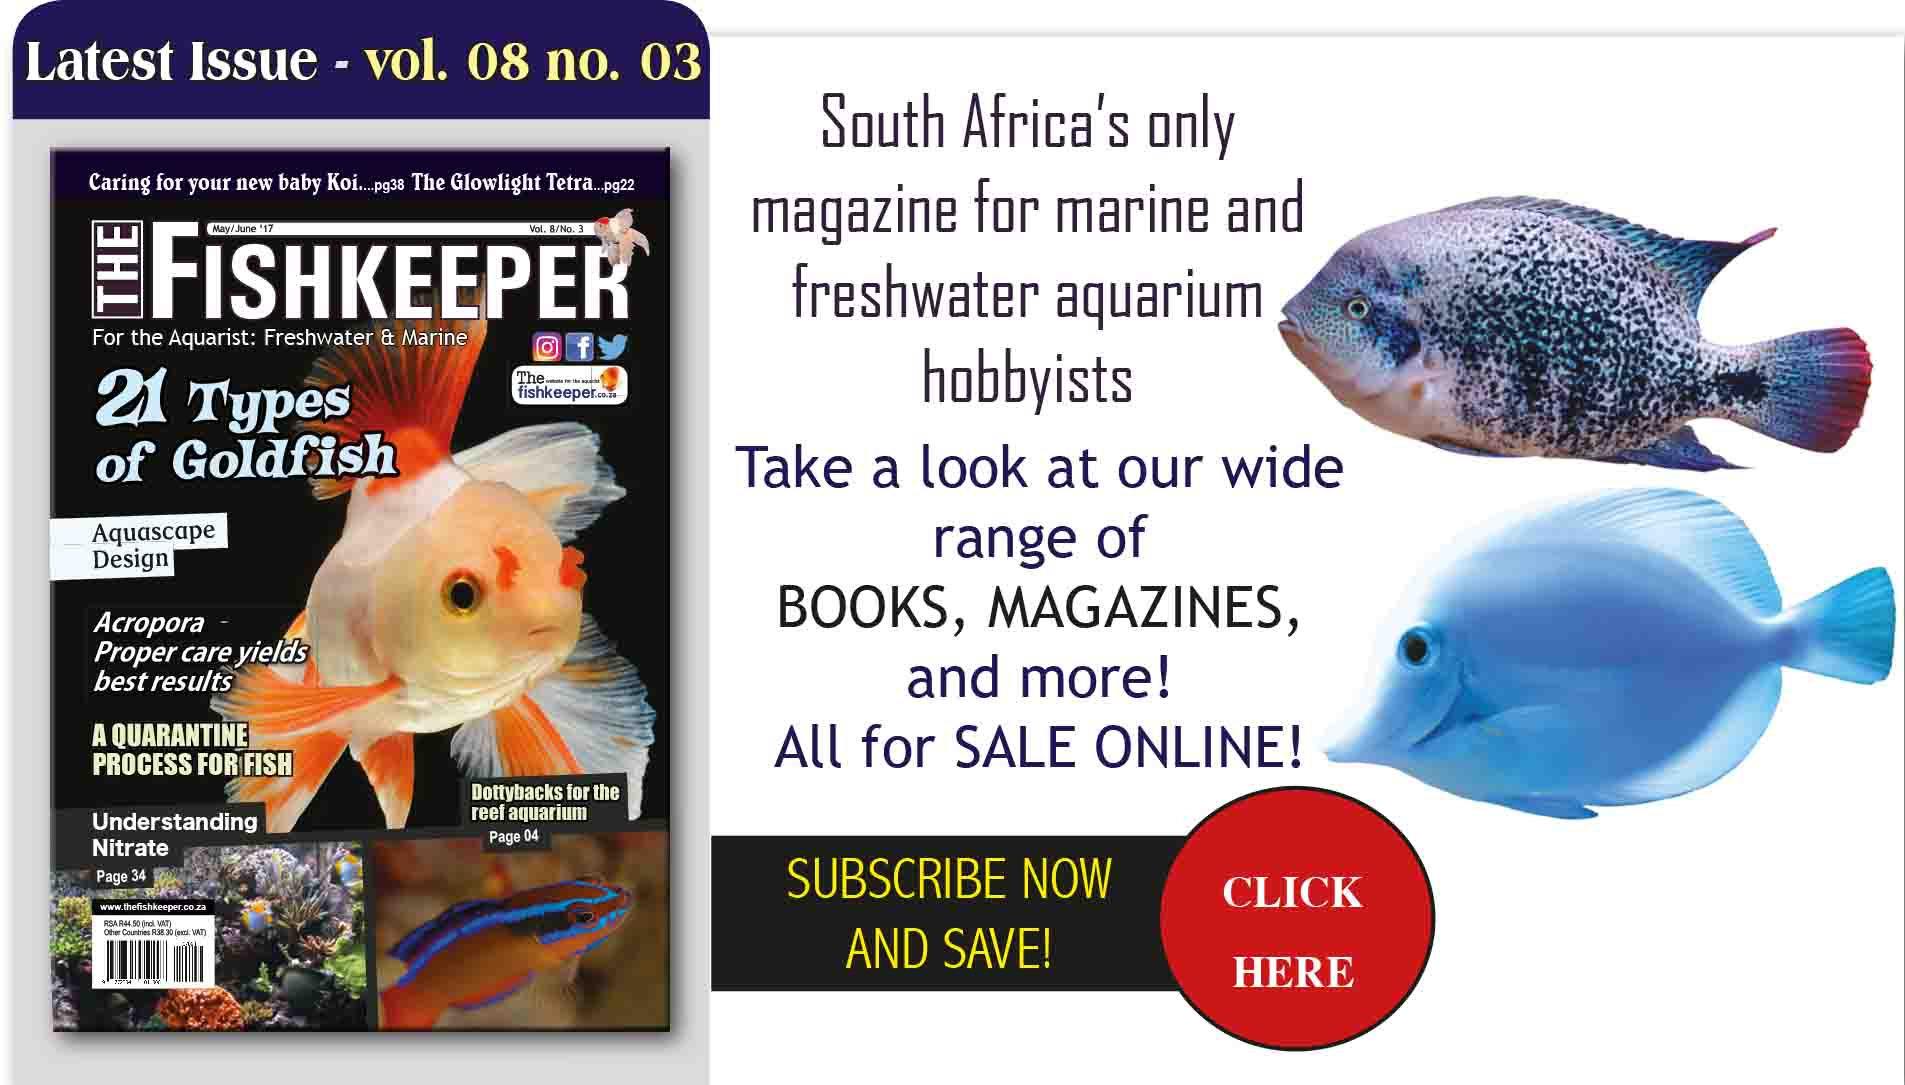 Freshwater aquarium fish in south africa - Home Page Pics Fishkeeper May